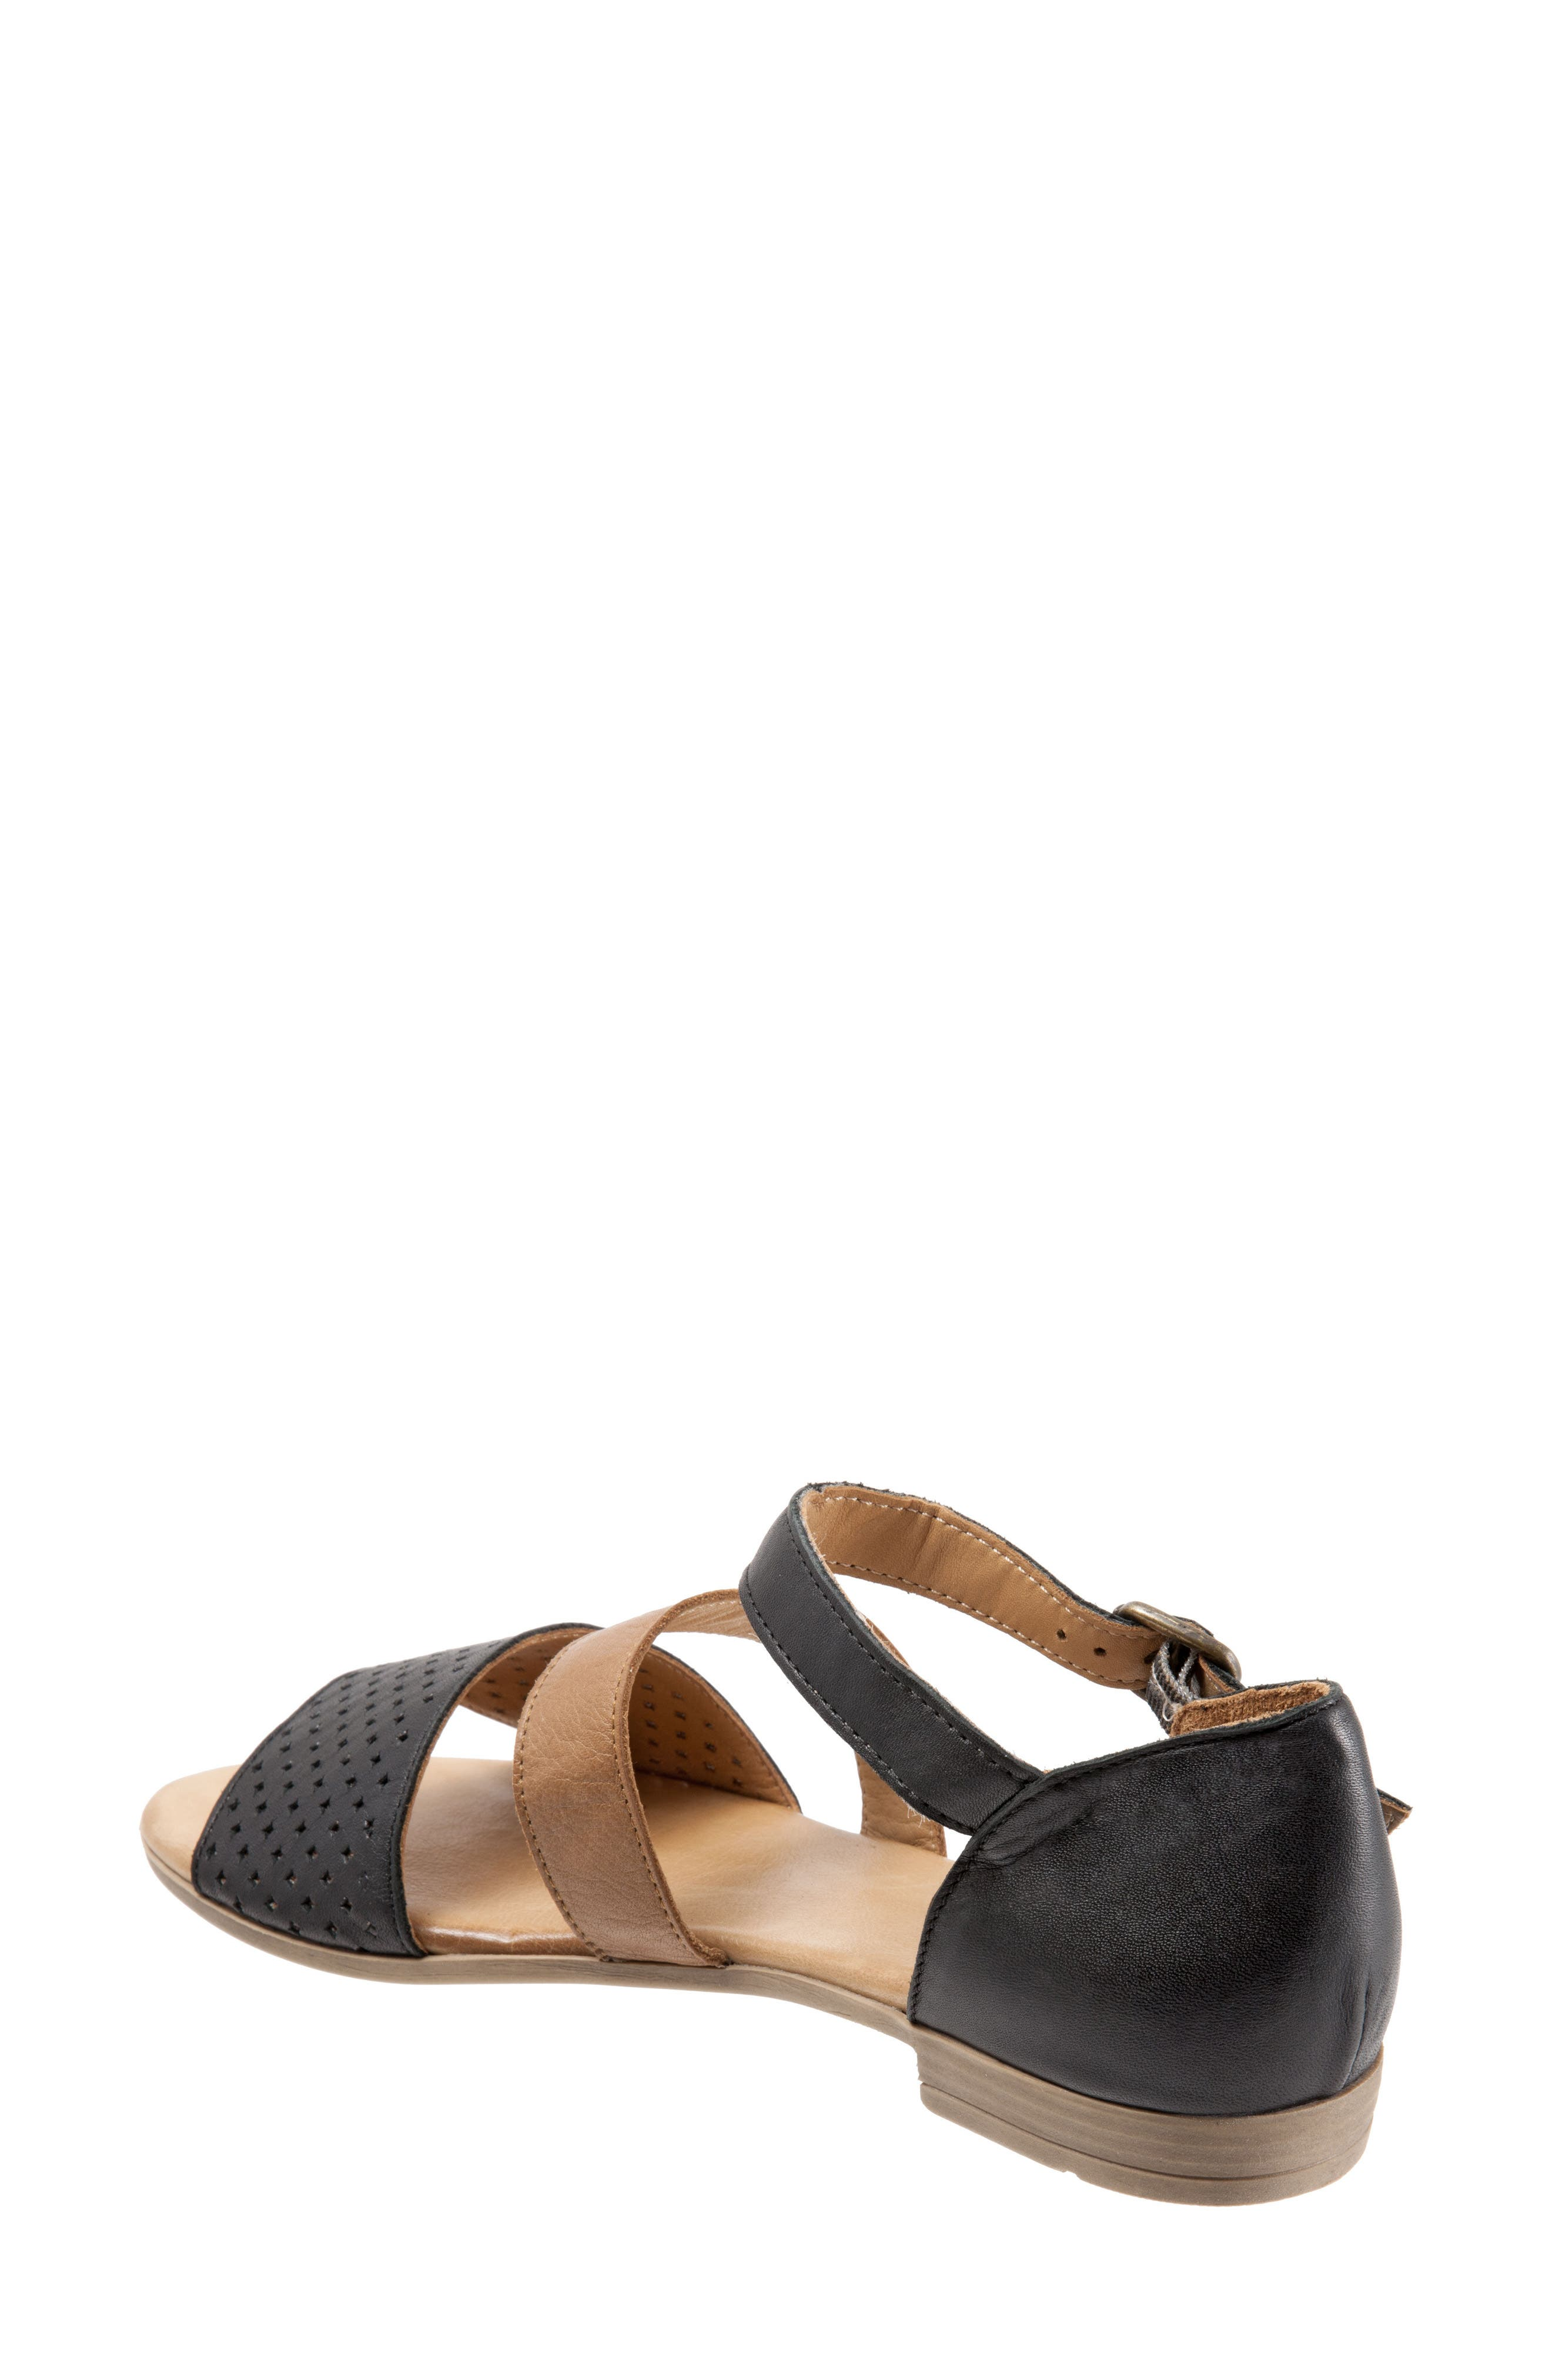 Janet Perforated Flat Sandal,                             Alternate thumbnail 2, color,                             BLACK LEATHER